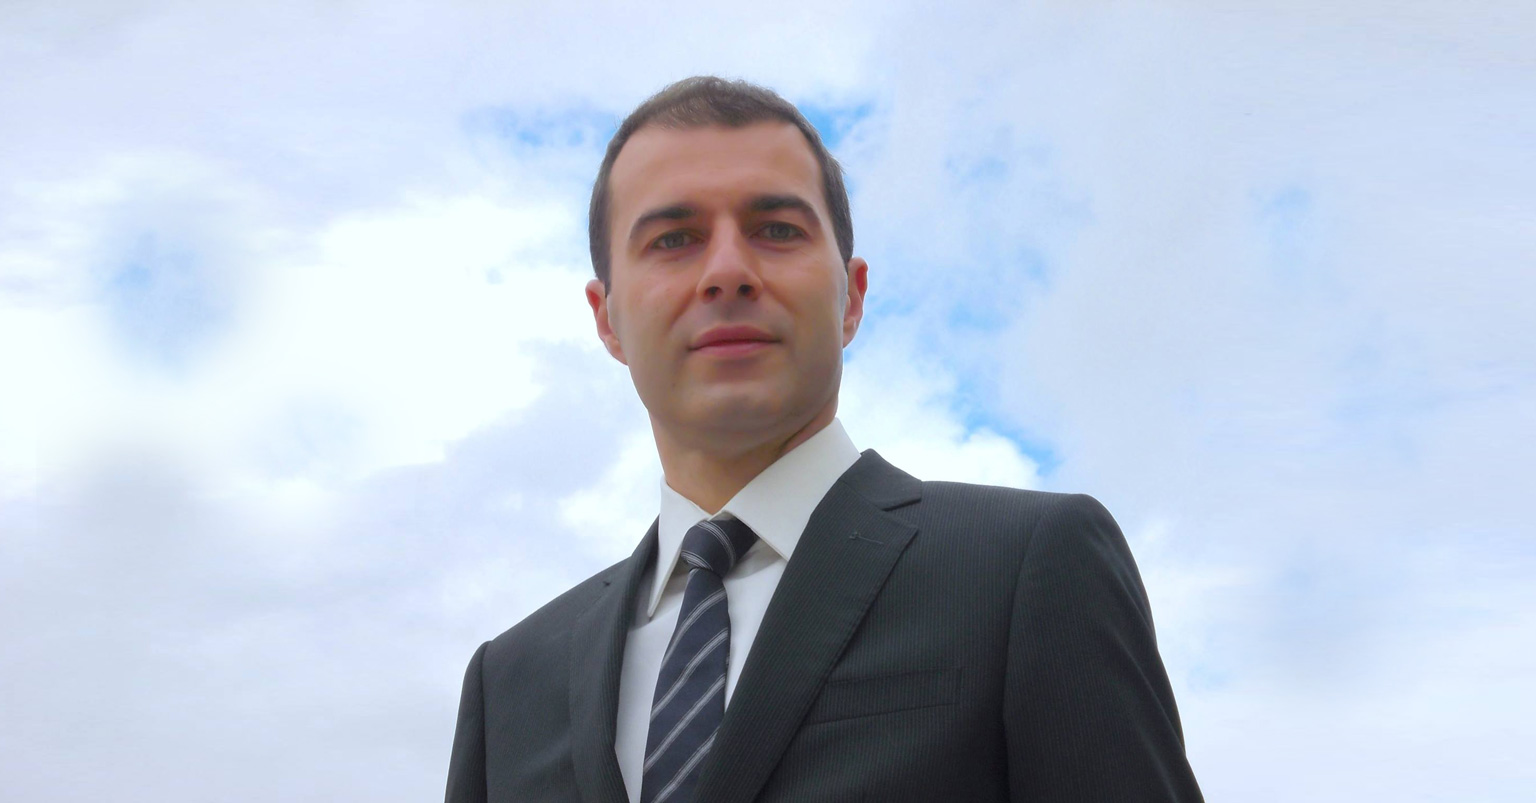 Gabriele Carzaniga, Emea sales engineer manager di Google Cloud